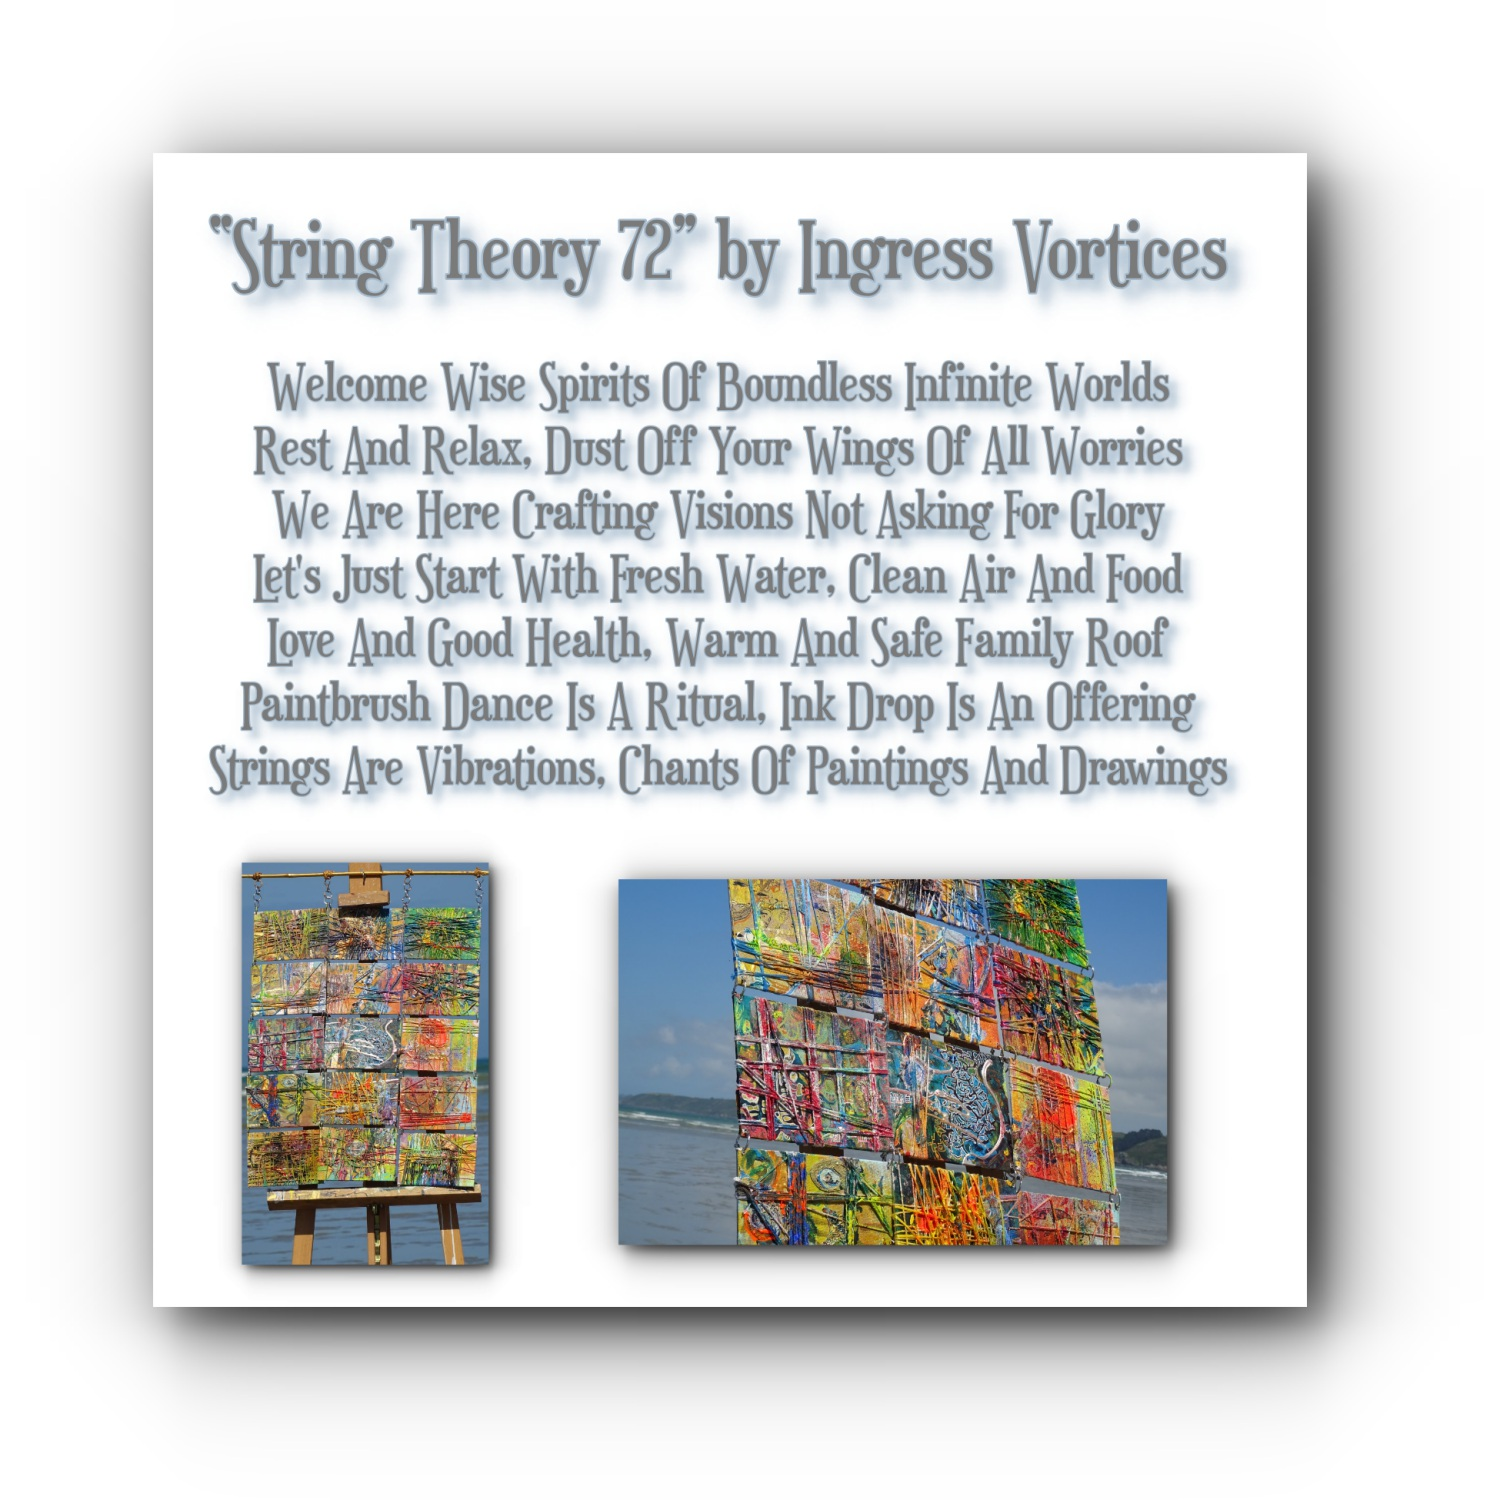 collage-painting-poem-string-theory-72-ingress-vortices.jpg